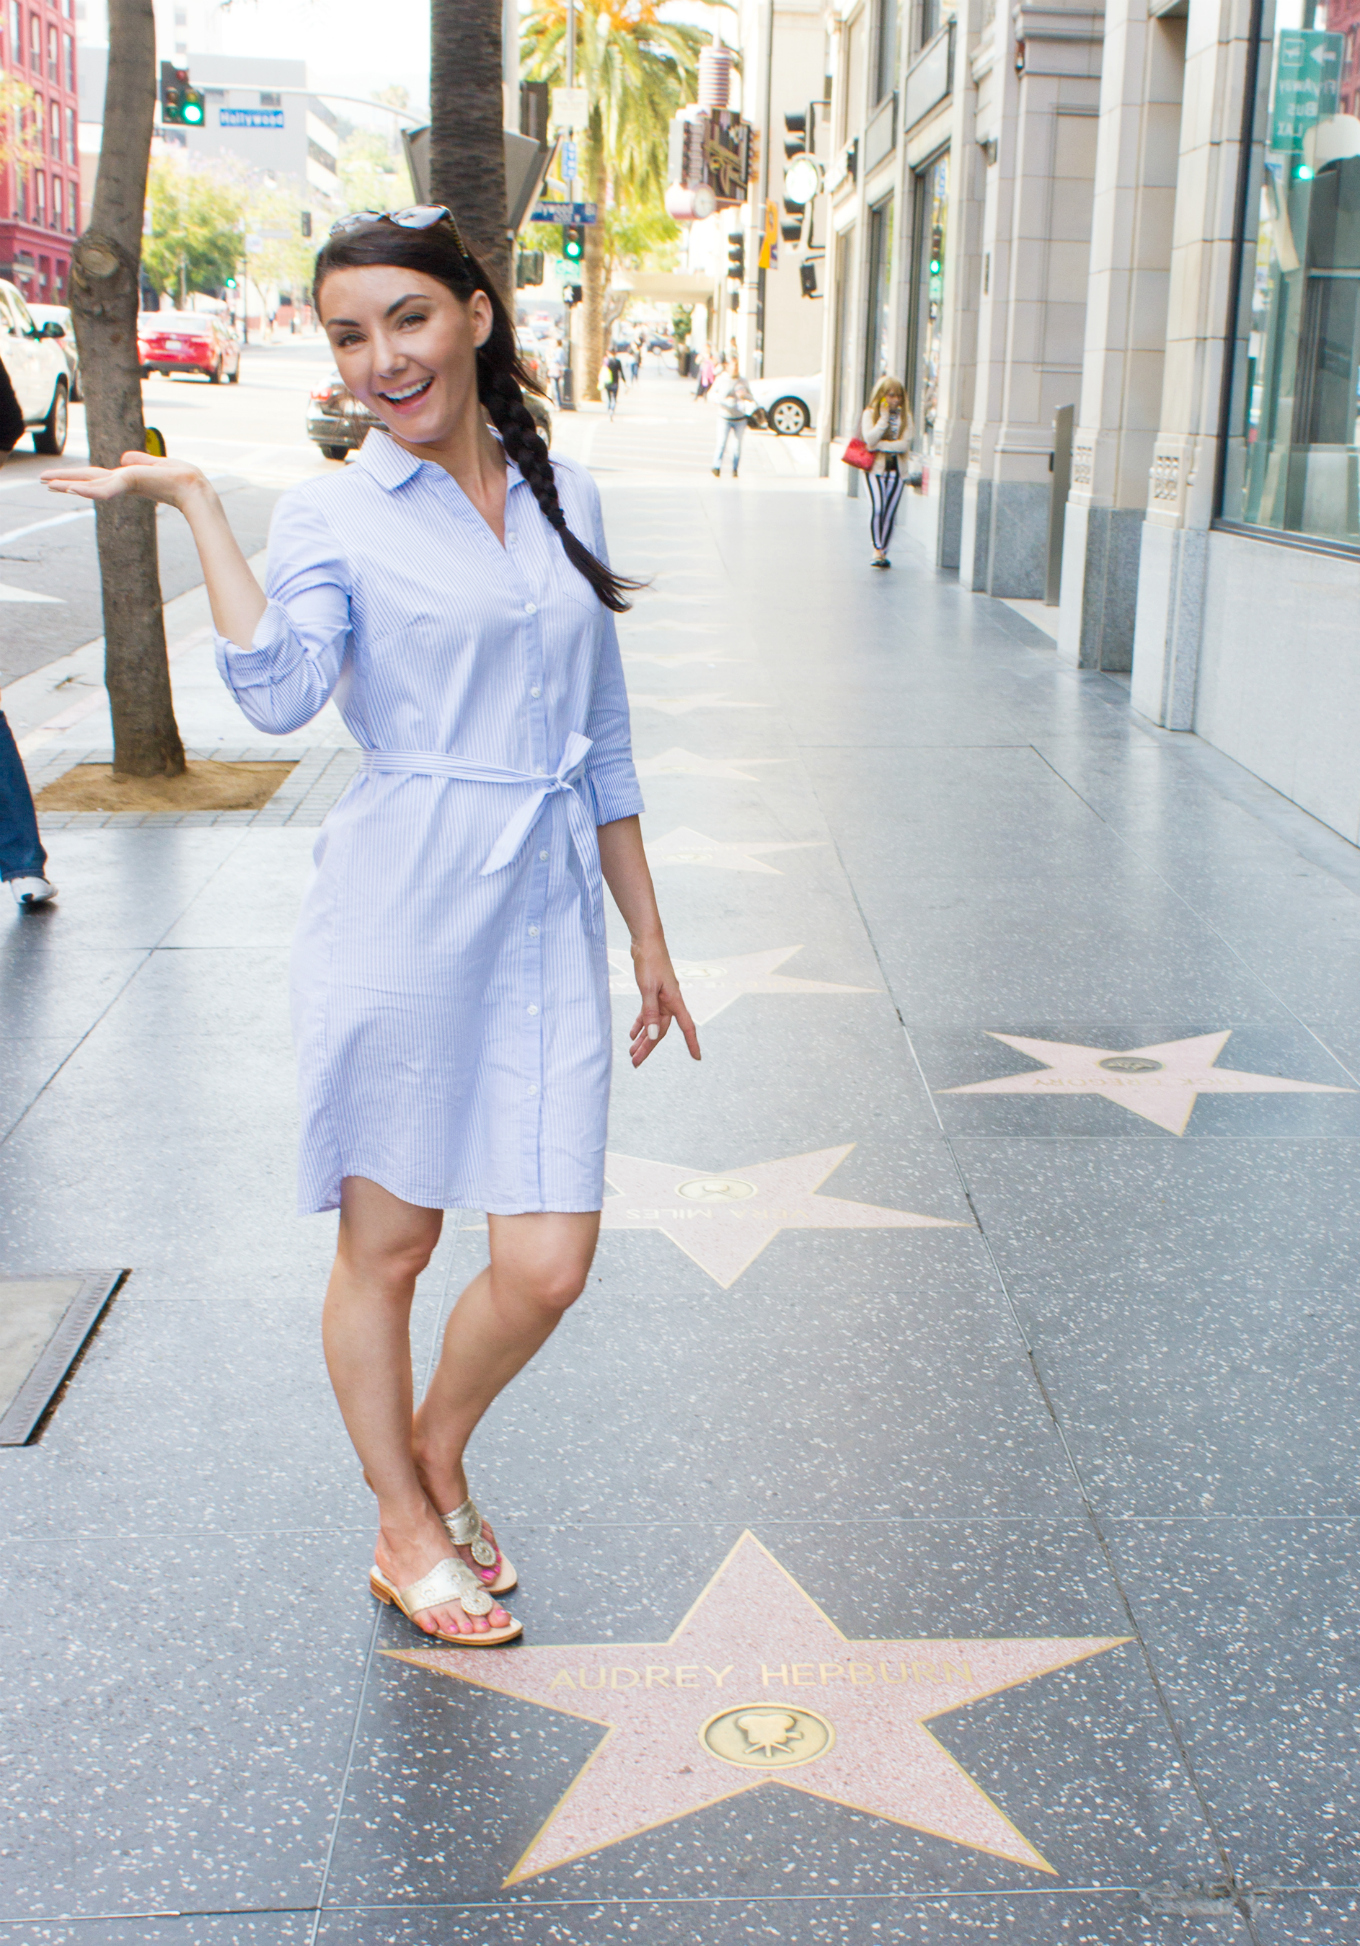 Kathryn-at-Audrey-Hepburn's-Star